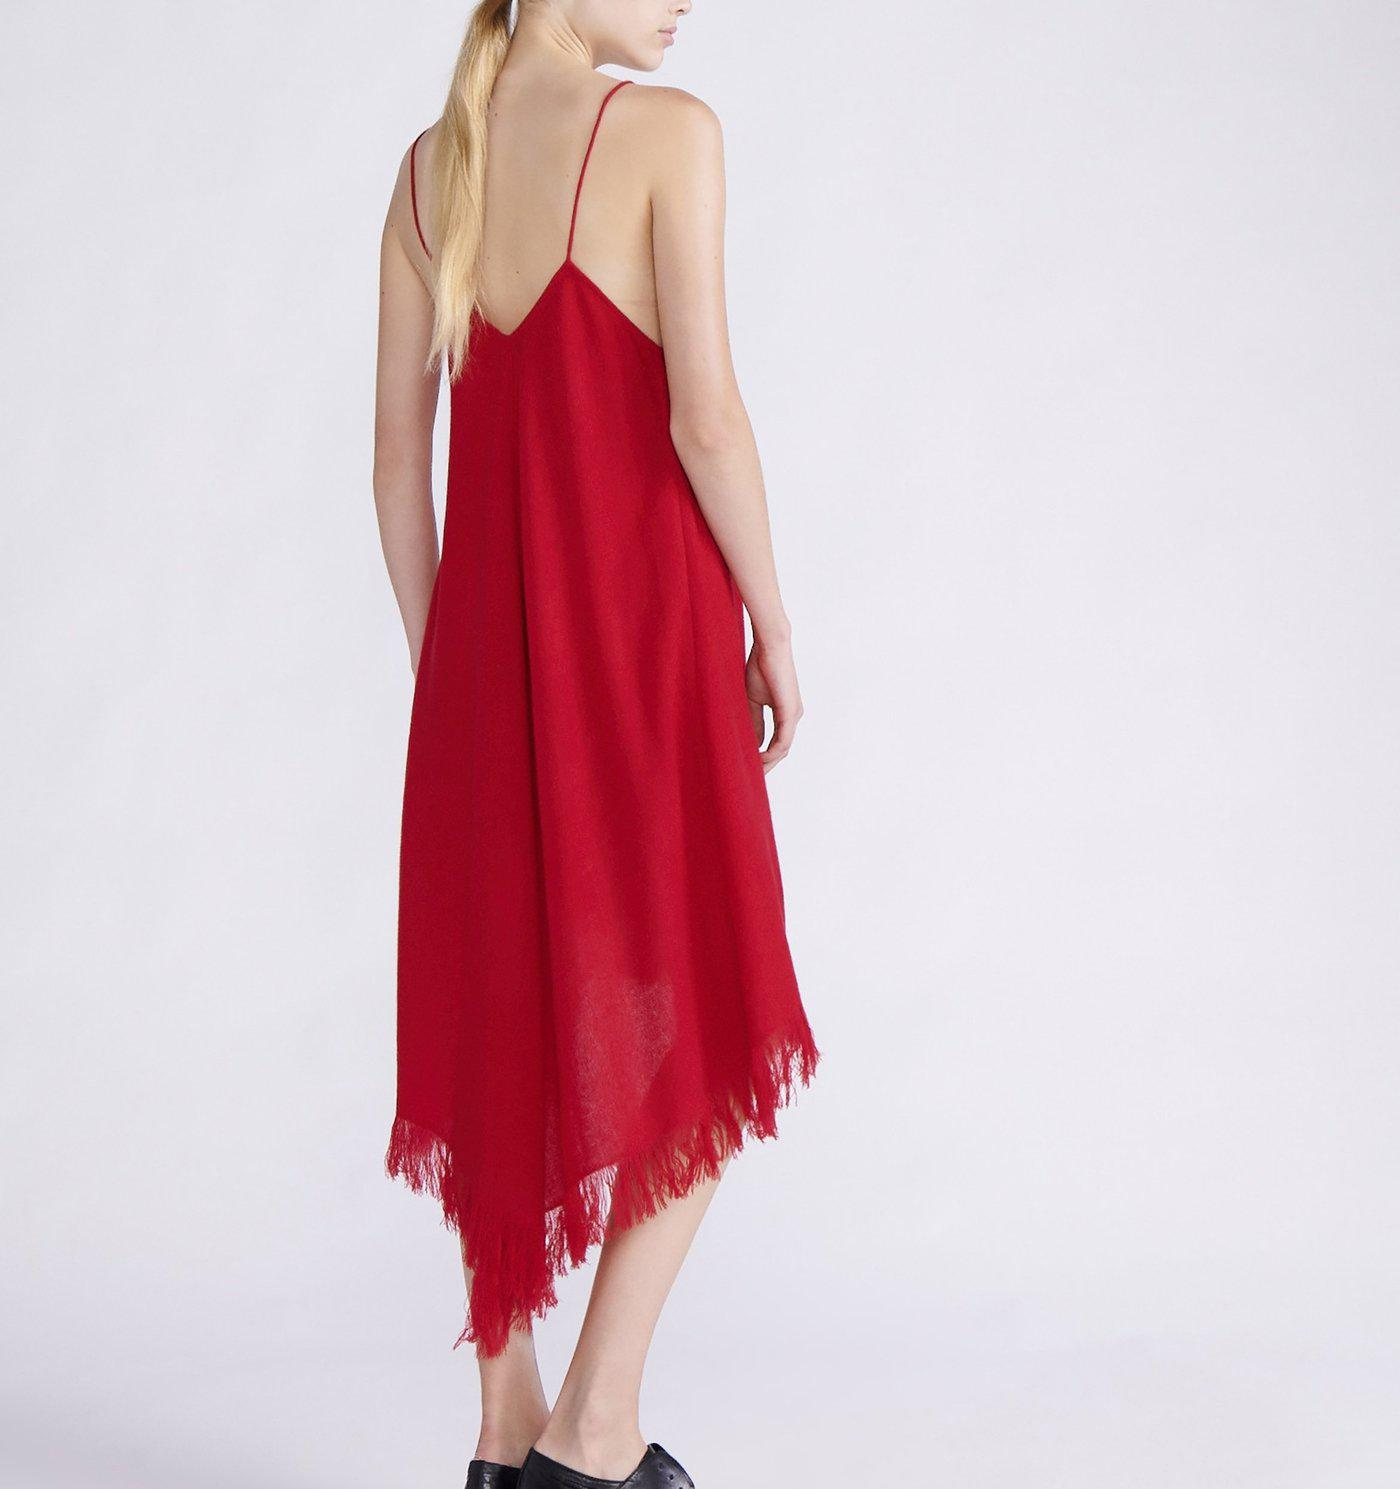 RYAN ROCHE CASHMERE WOVEN SCARF DRESS WITH TINY SPAGHETTI STRAPS